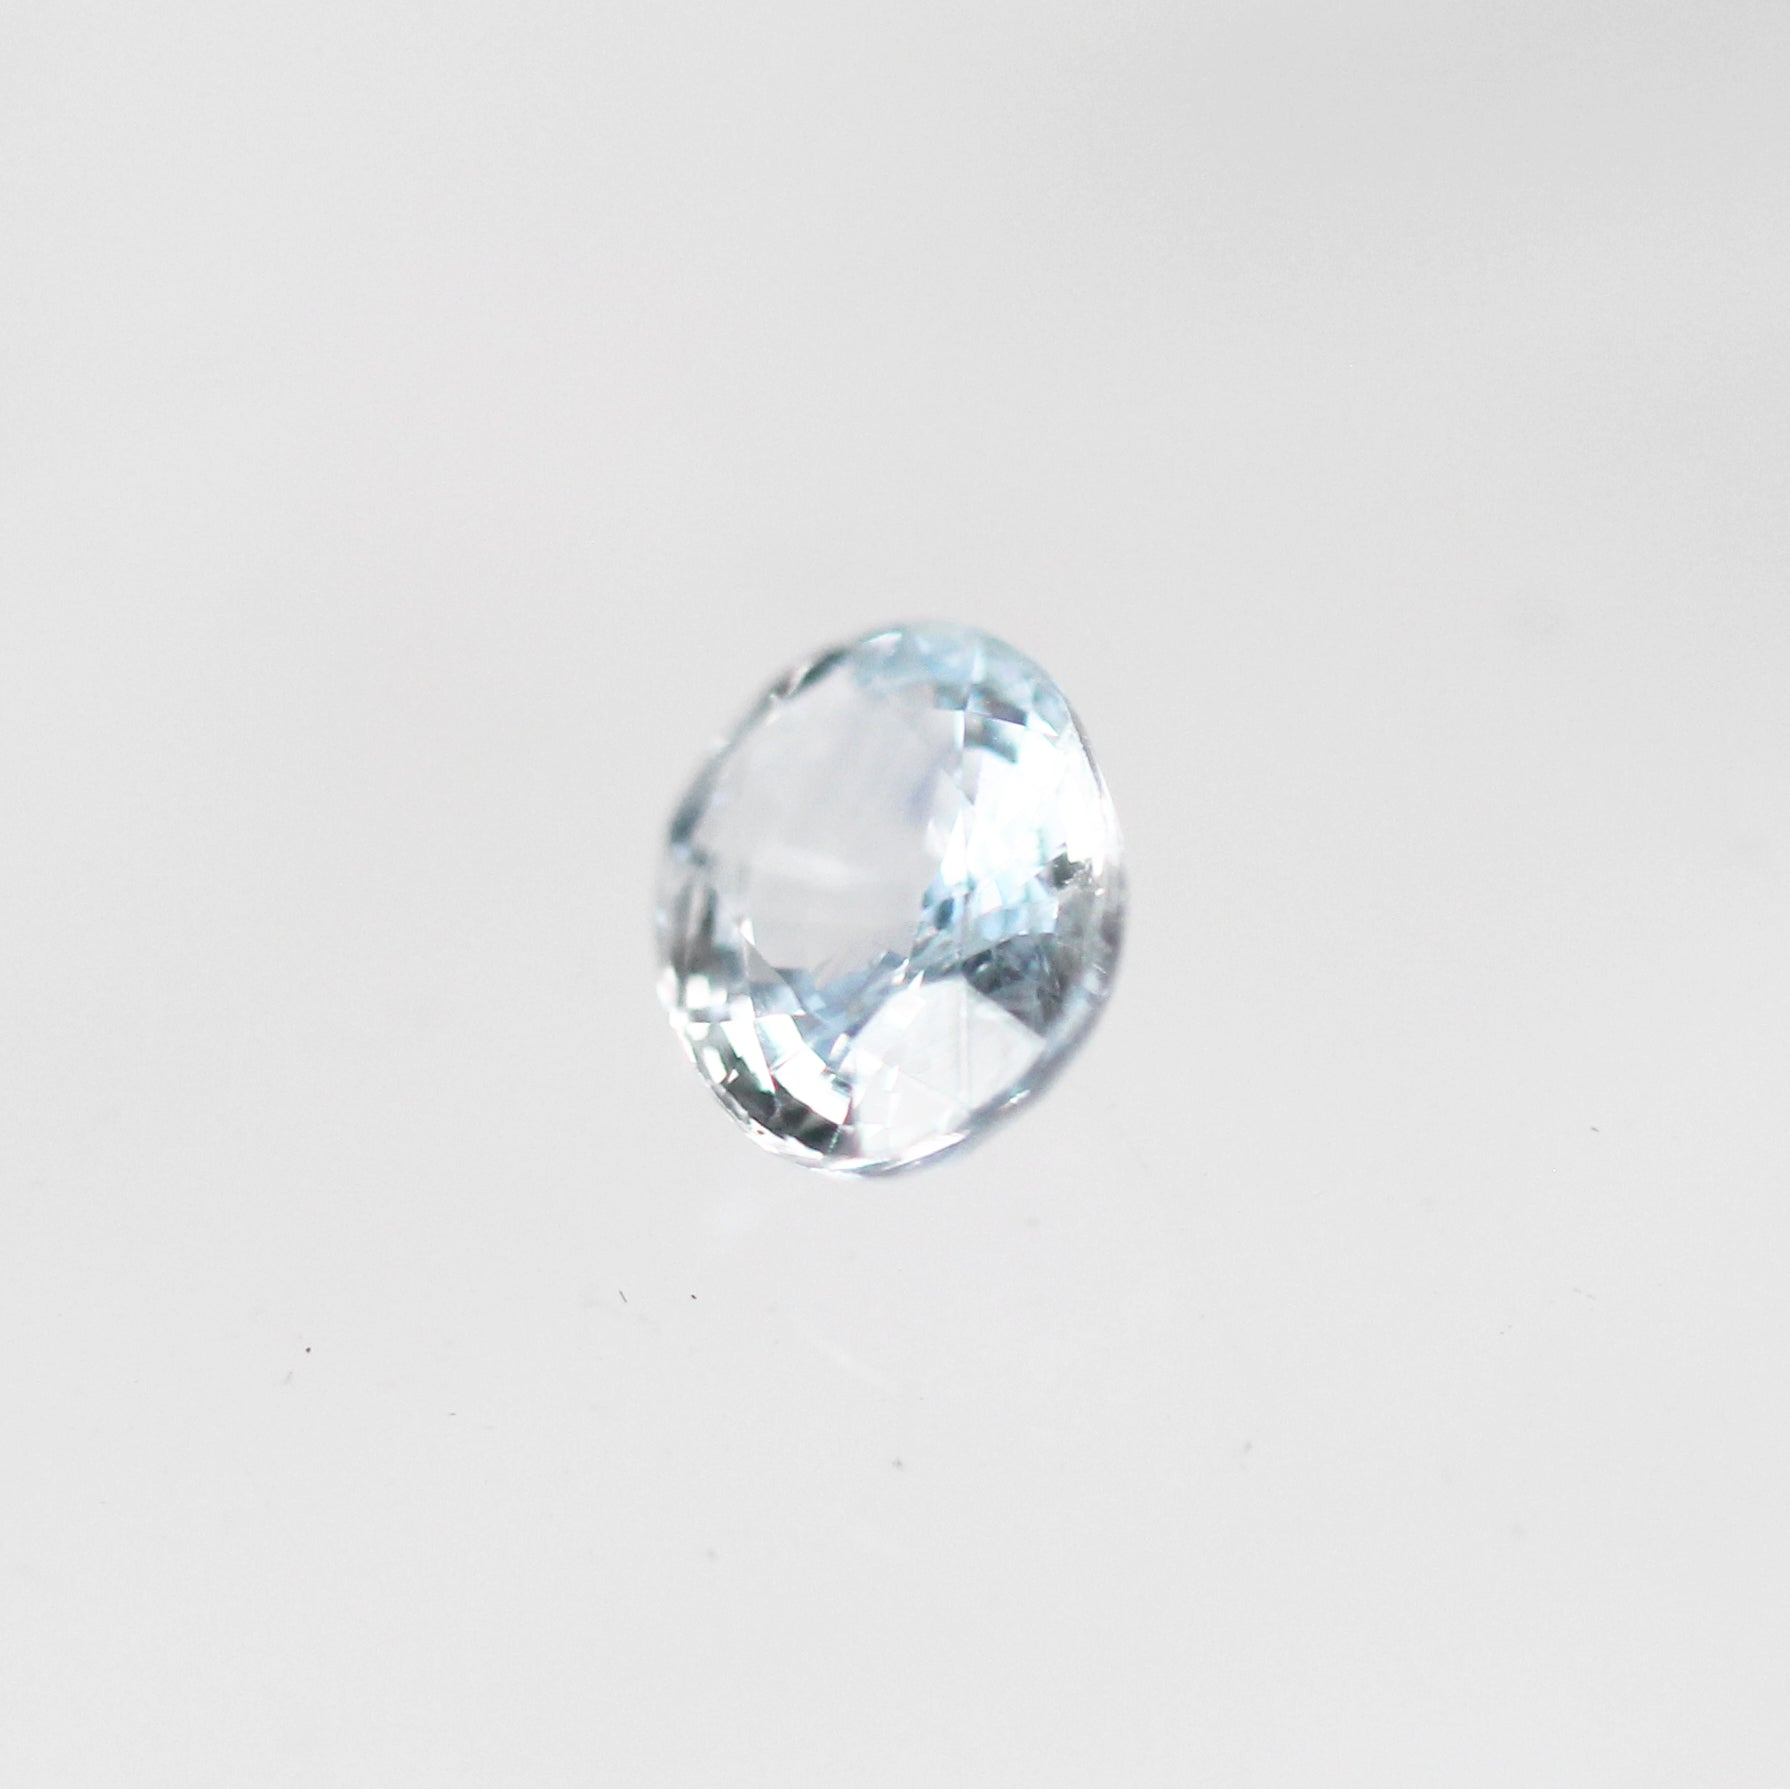 1.42 Carat Oval Sapphire - Inventory Codee OBWS142 - Celestial Diamonds ® by Midwinter Co.